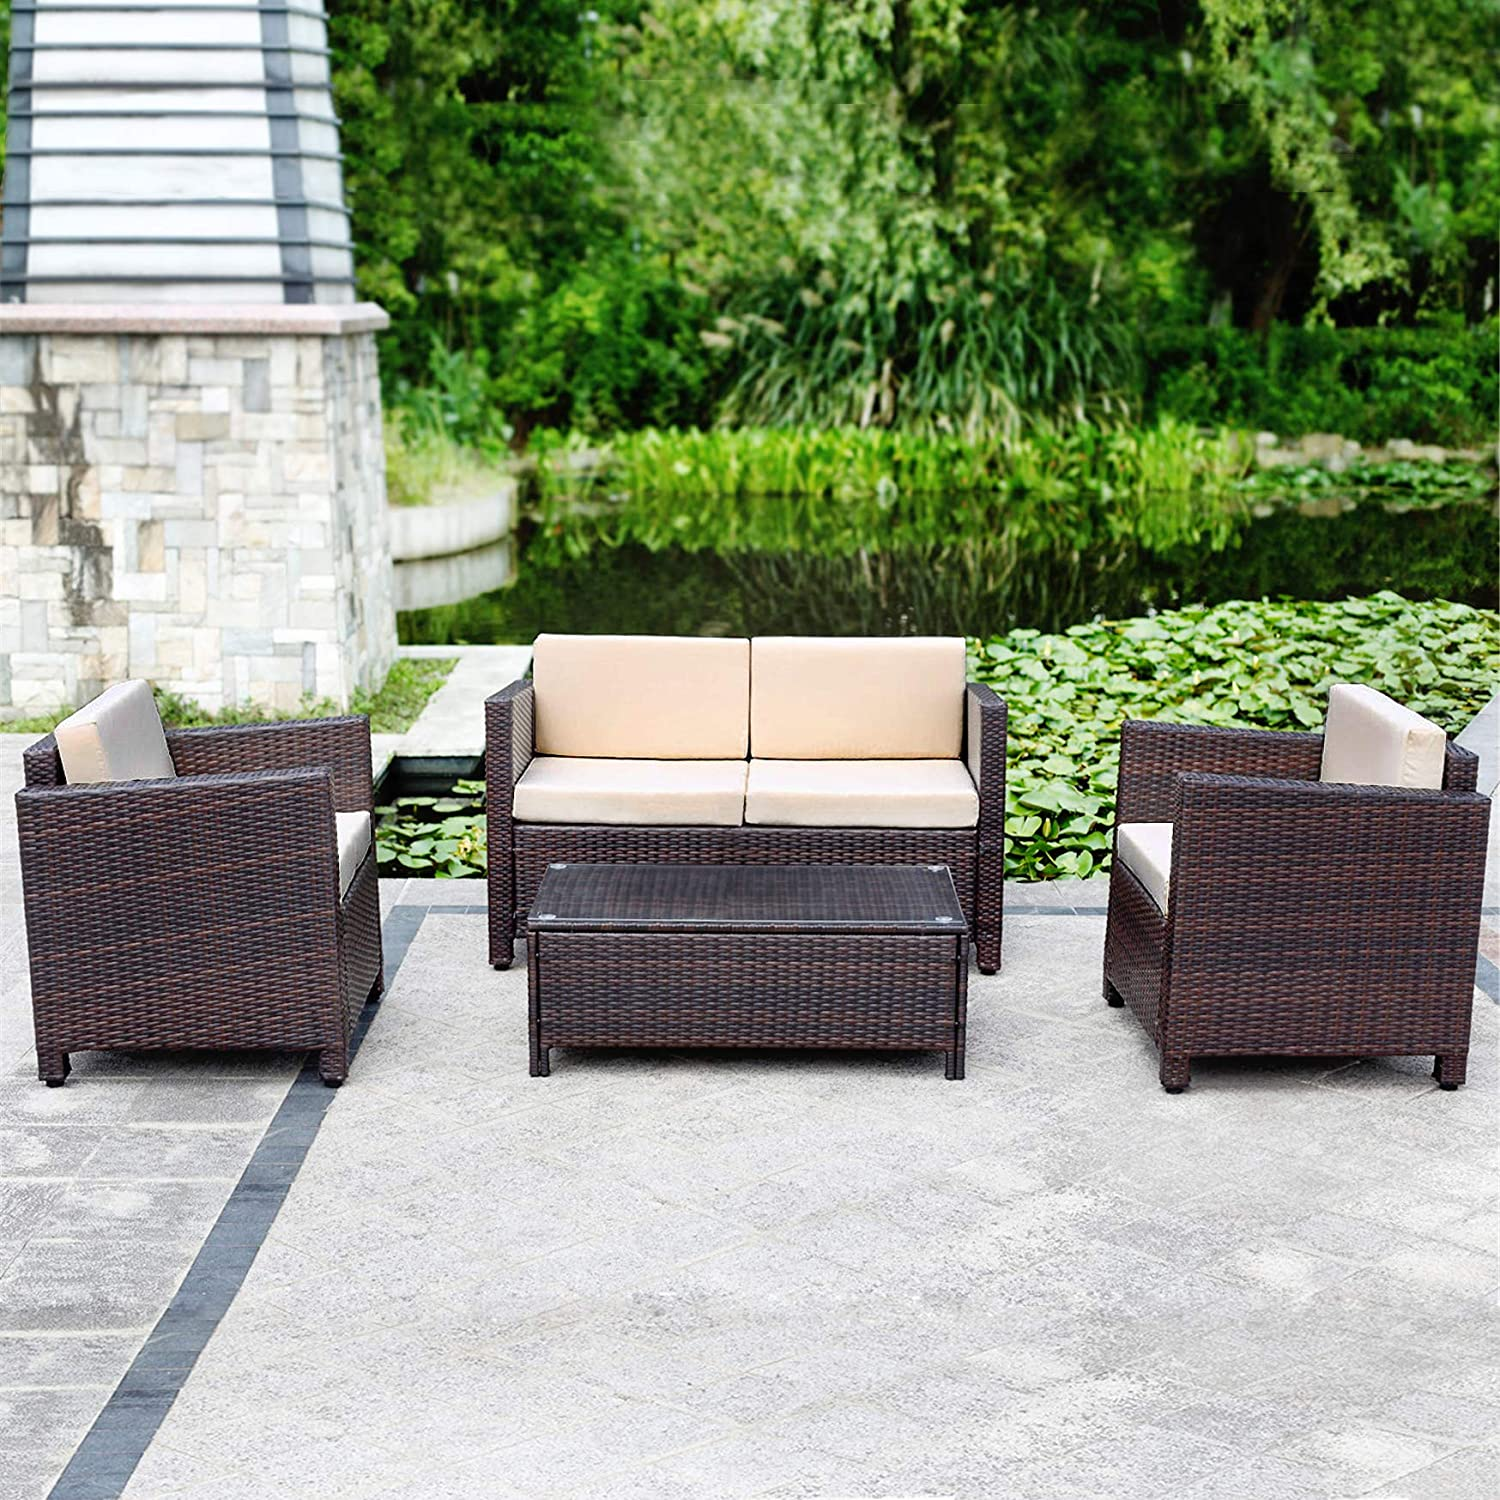 Amazon com wicker furniture direct outdoor patio furniture set 4 piece coversation set rattan chair loveseat with table brown wicker with beige cushion